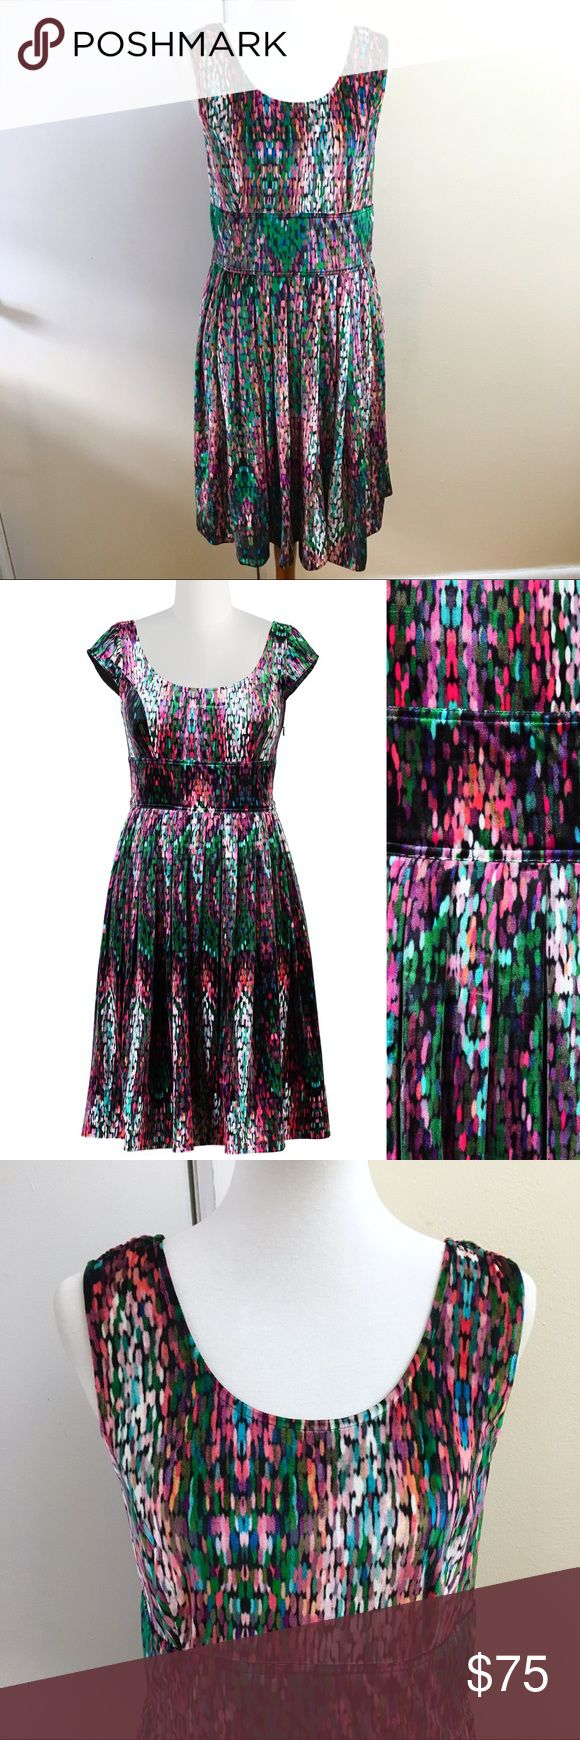 "Like New eShakti Stretch Velvet Empire Dress Like new condition with no sign of wear.  Size Large / 14  Stretch velvet with multicolor digital print.  Side zip with pockets.  Skirt fully lined.  Measurements taken flat unstretched:  Bust: 20""  Waist: 17""  Length: 41""  100% Polyester eshakti Dresses Midi"